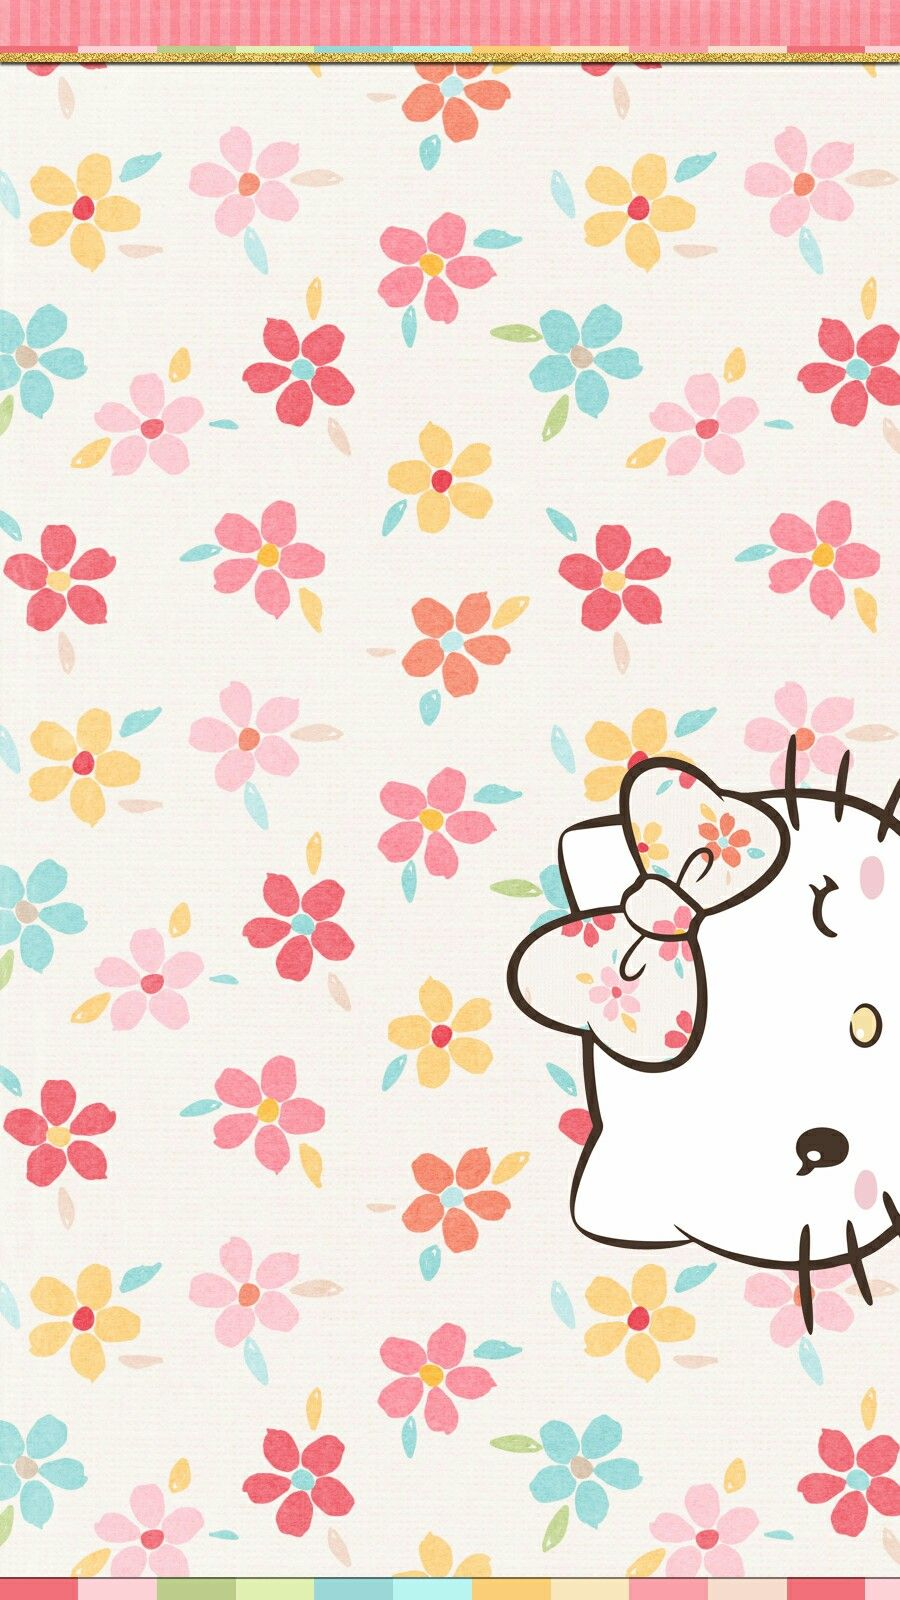 Good Wallpaper Hello Kitty Iphone - f3bf4071a86467b97248a71ac19abbfe  Picture_74169.jpg